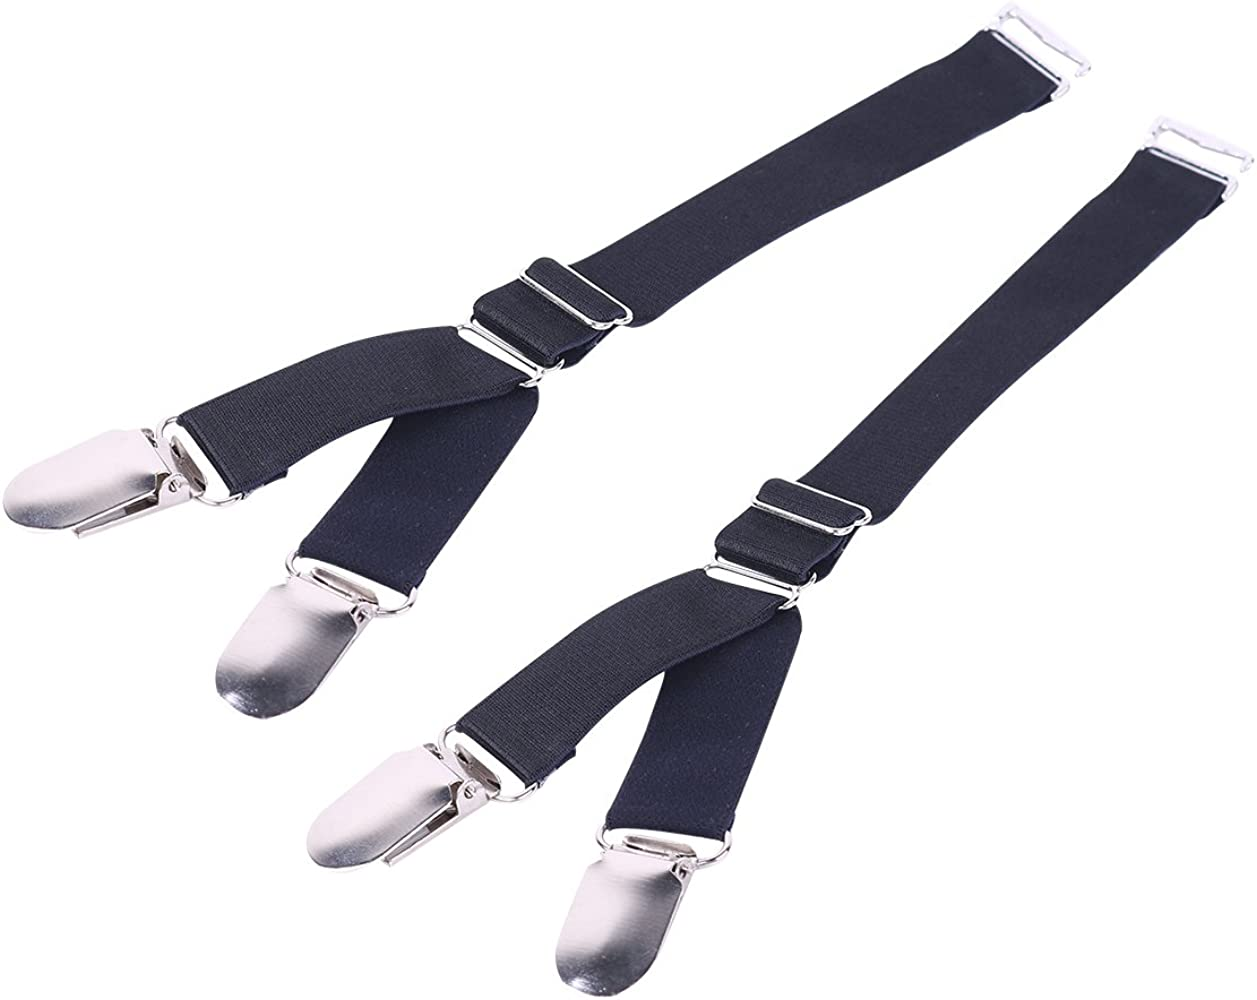 Ericotry 1 Pair 2PCS Multifuction Adjustable Elastic Stocking Clip Garter Suspender Belt Accessories with Straps and Clips for Stockings Black Y style